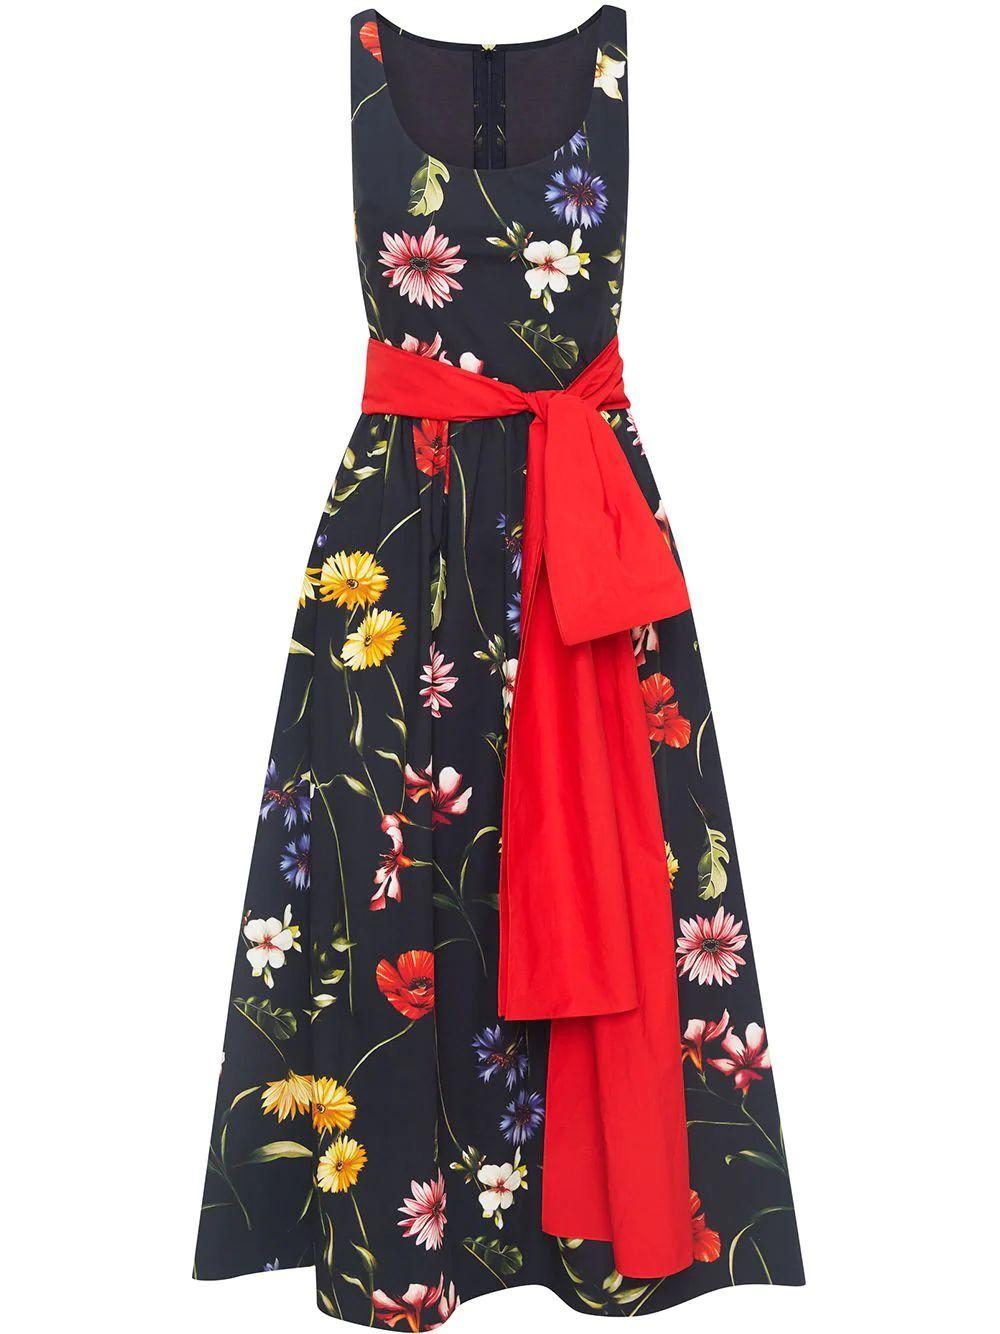 Floral Dress With Bow Detail